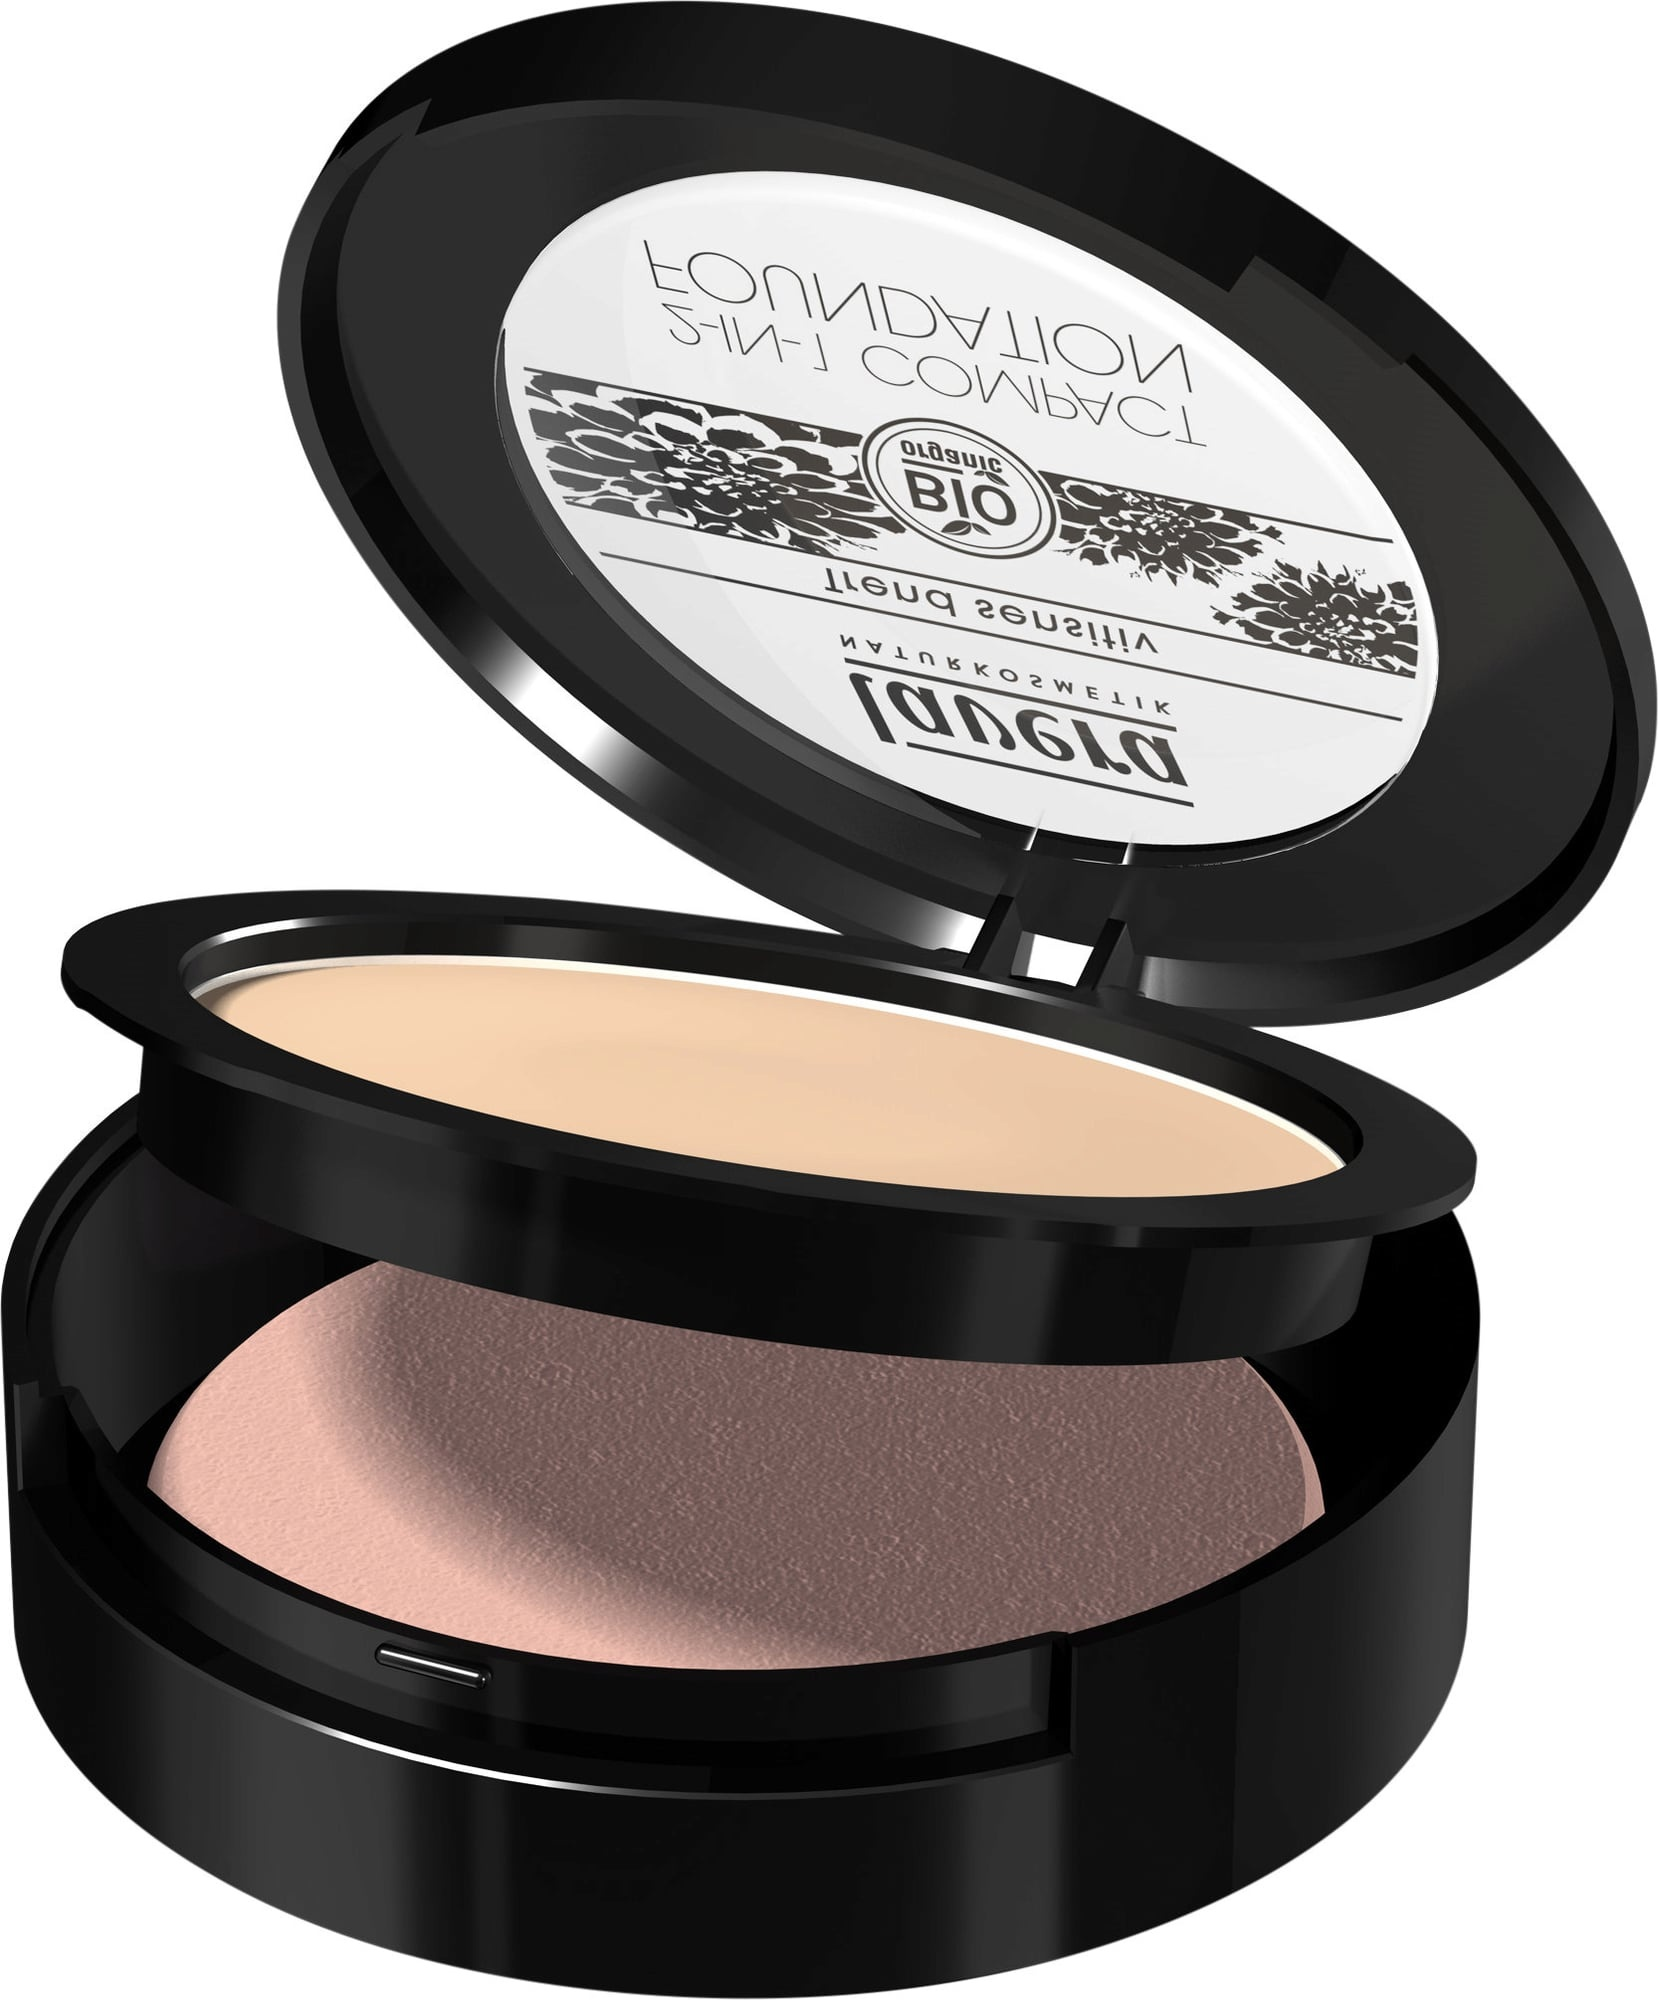 Lavera Trend Compact Foundation 2 in 1 Honey 03, 10g